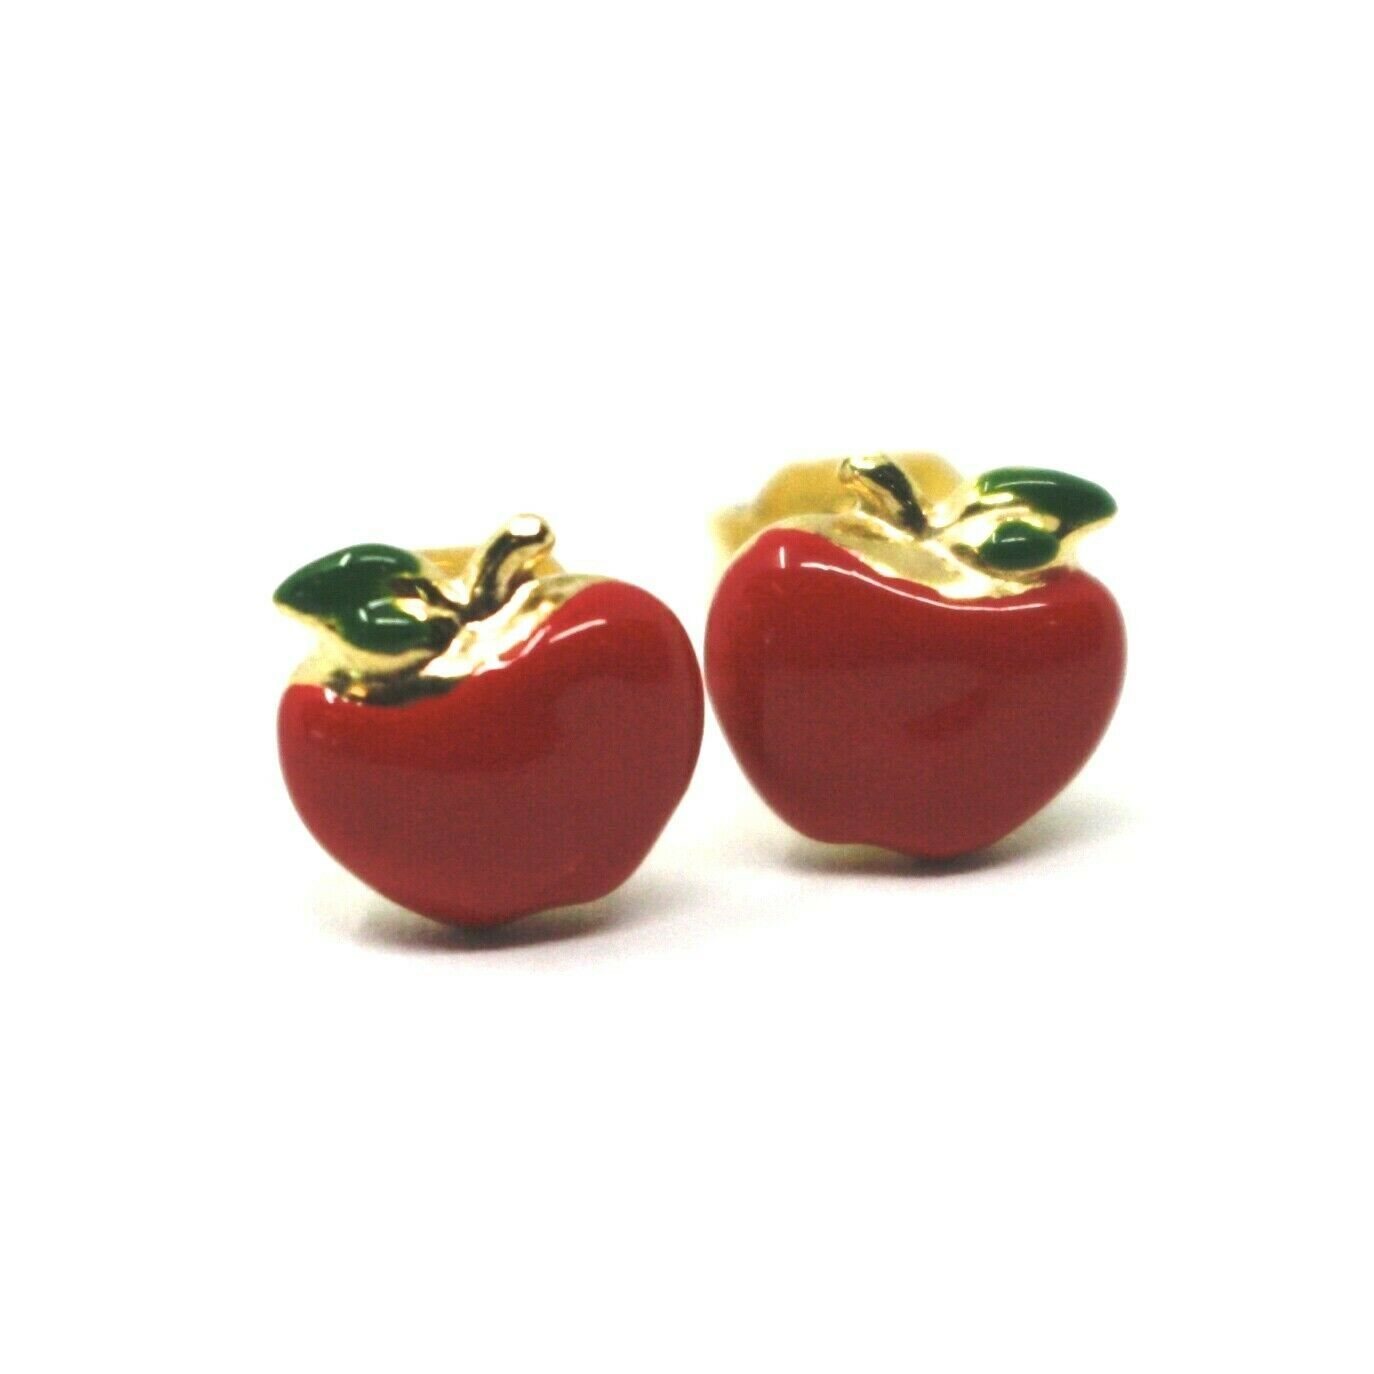 18K YELLOW GOLD STUD EARRINGS, ENAMEL RED APPLE, 9mm, 0.35 INCHES